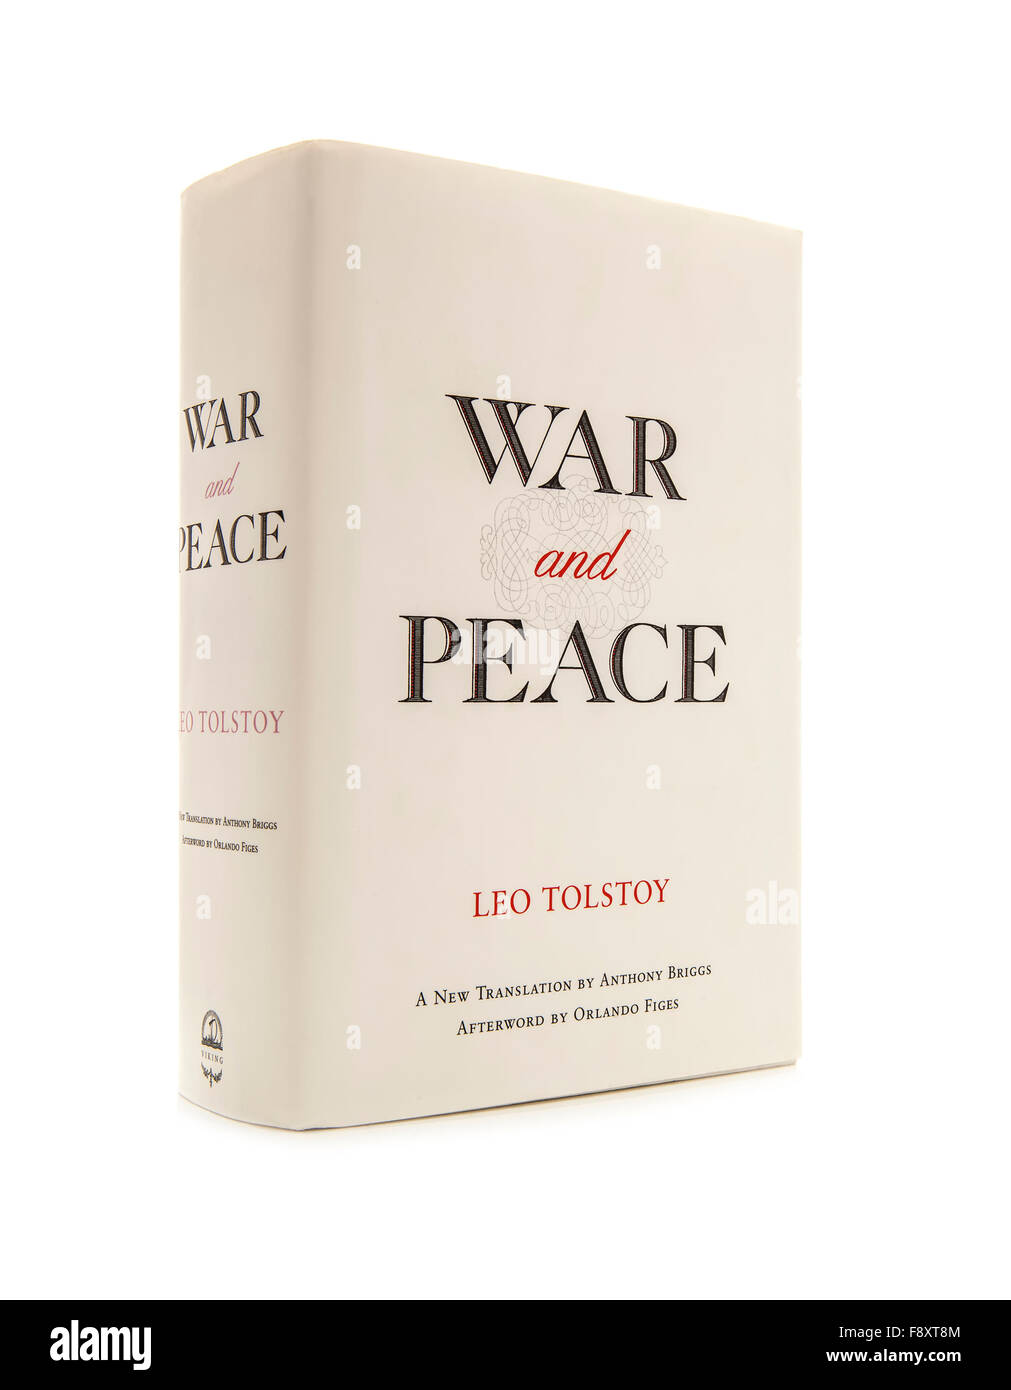 War & Peace by Leo Tolstoy - Translation by Anthony Briggs on a white background - Stock Image